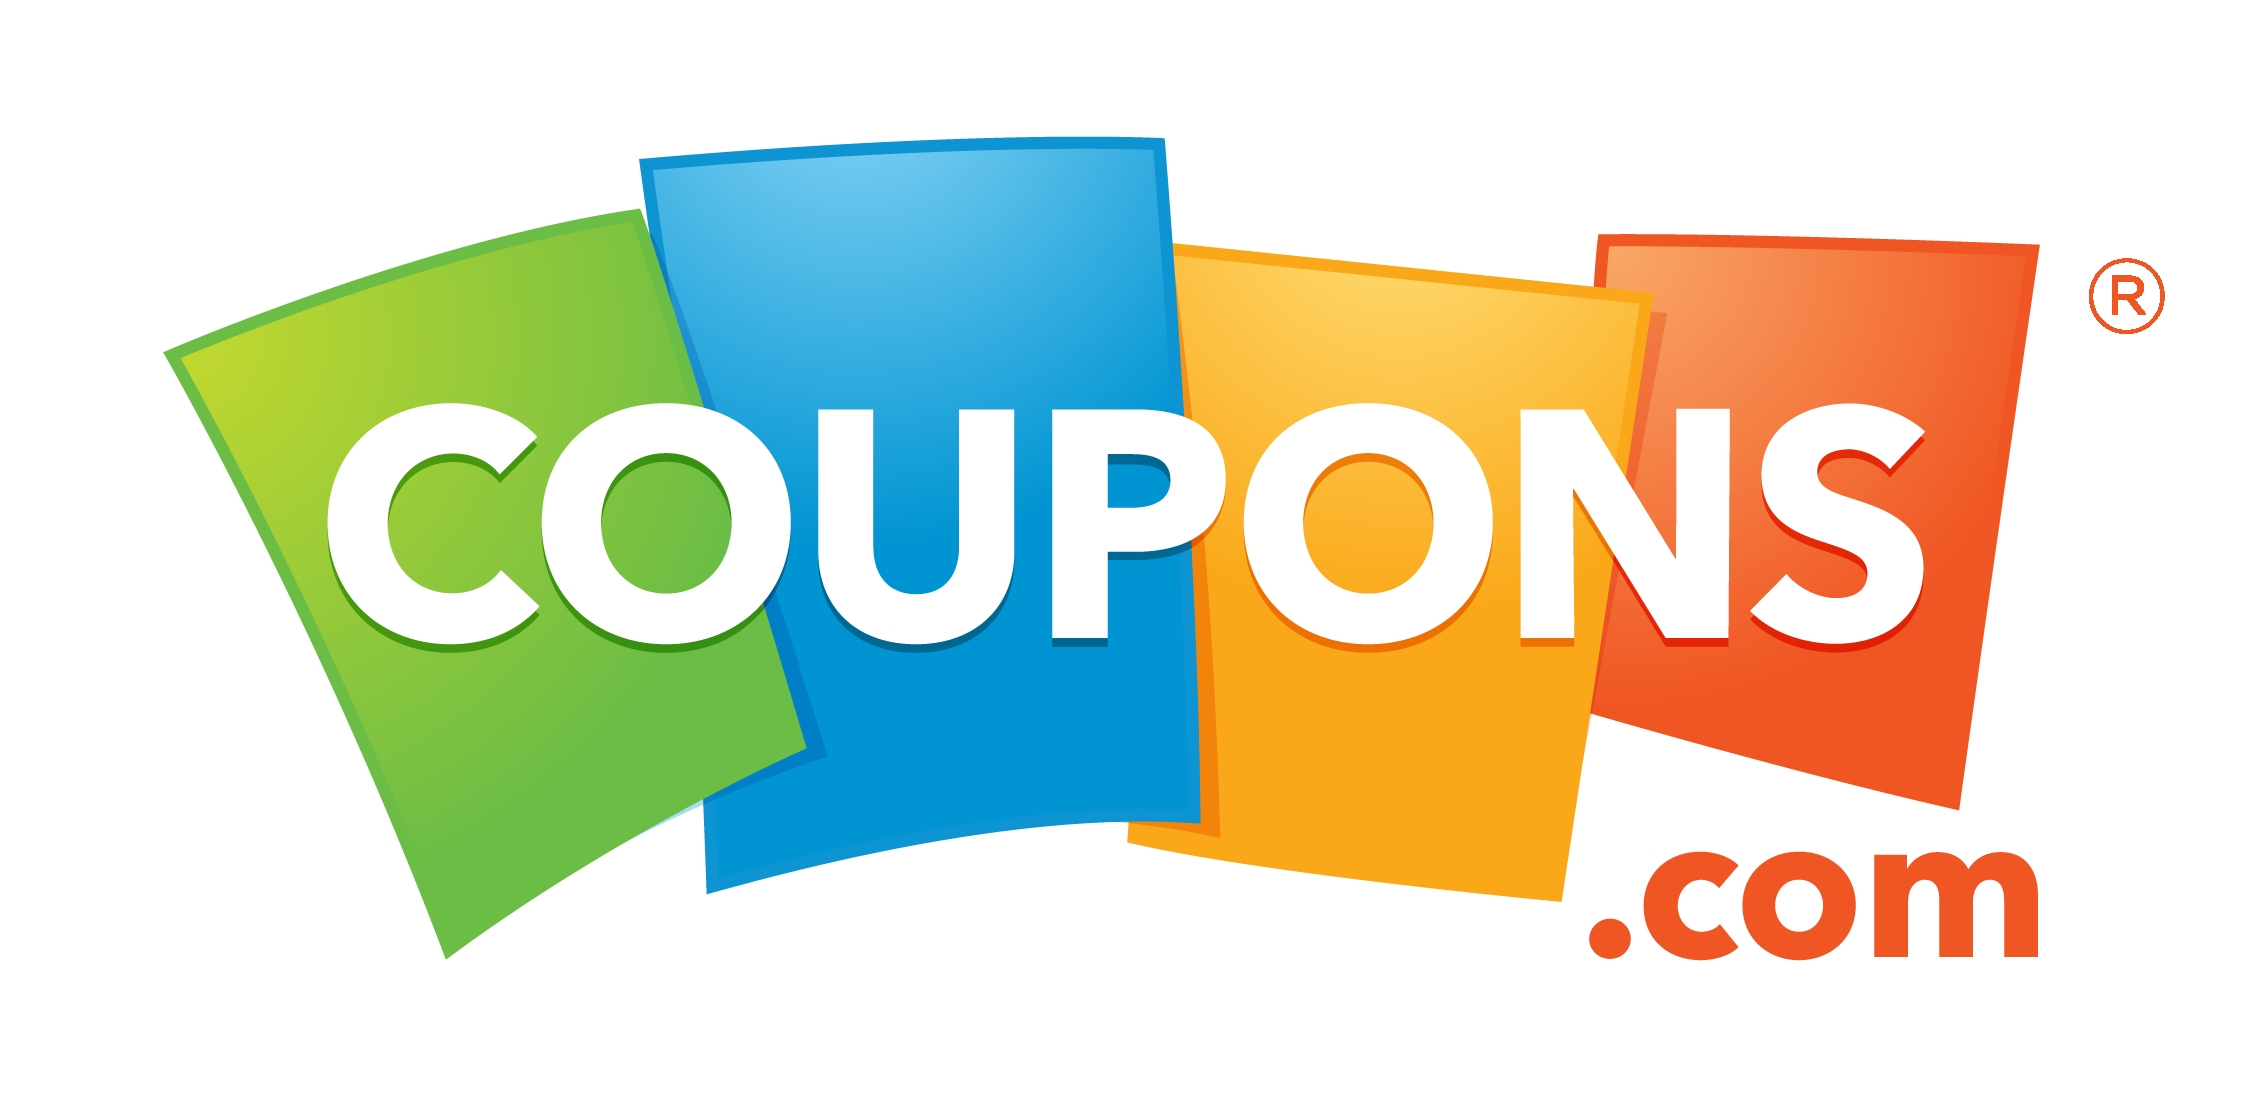 Coupons.com Incorporated logo